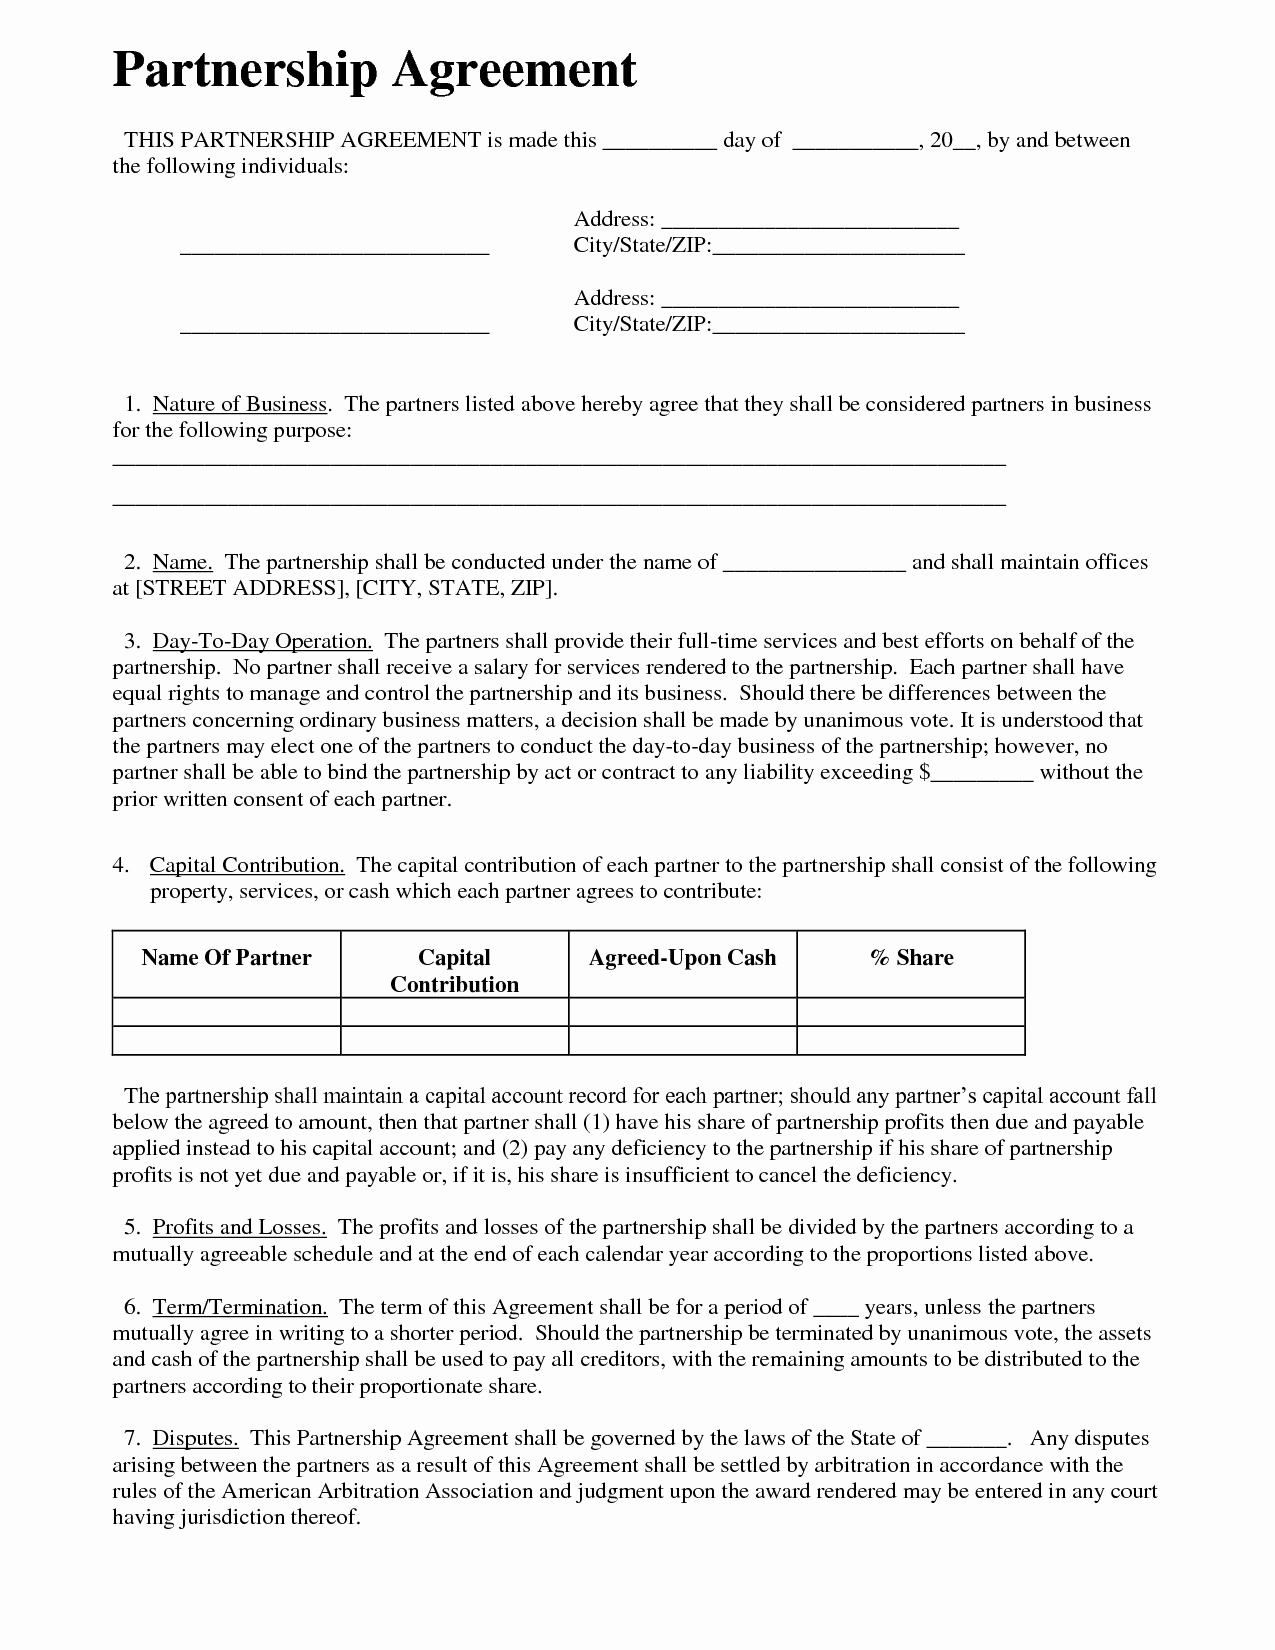 Business Partnership Agreement Template Lovely Partnership Agreement Business Templates